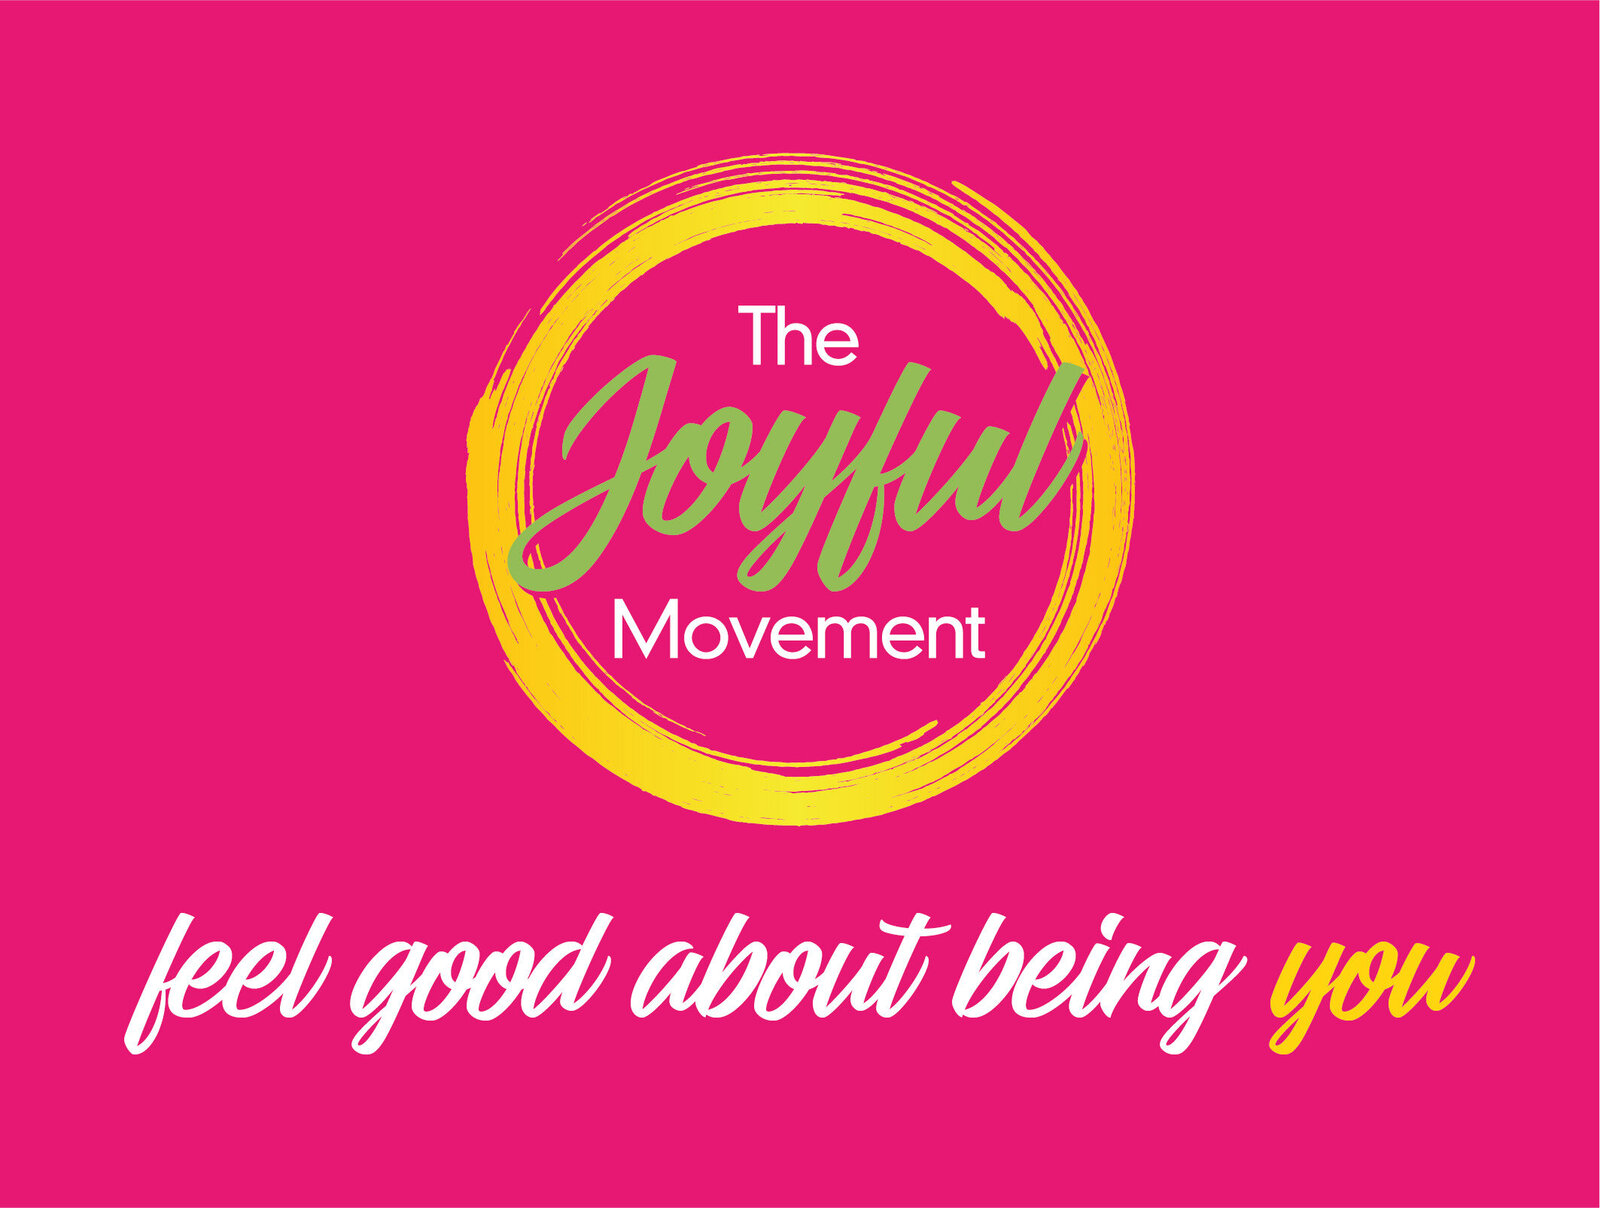 The Joyful Movement-04-04